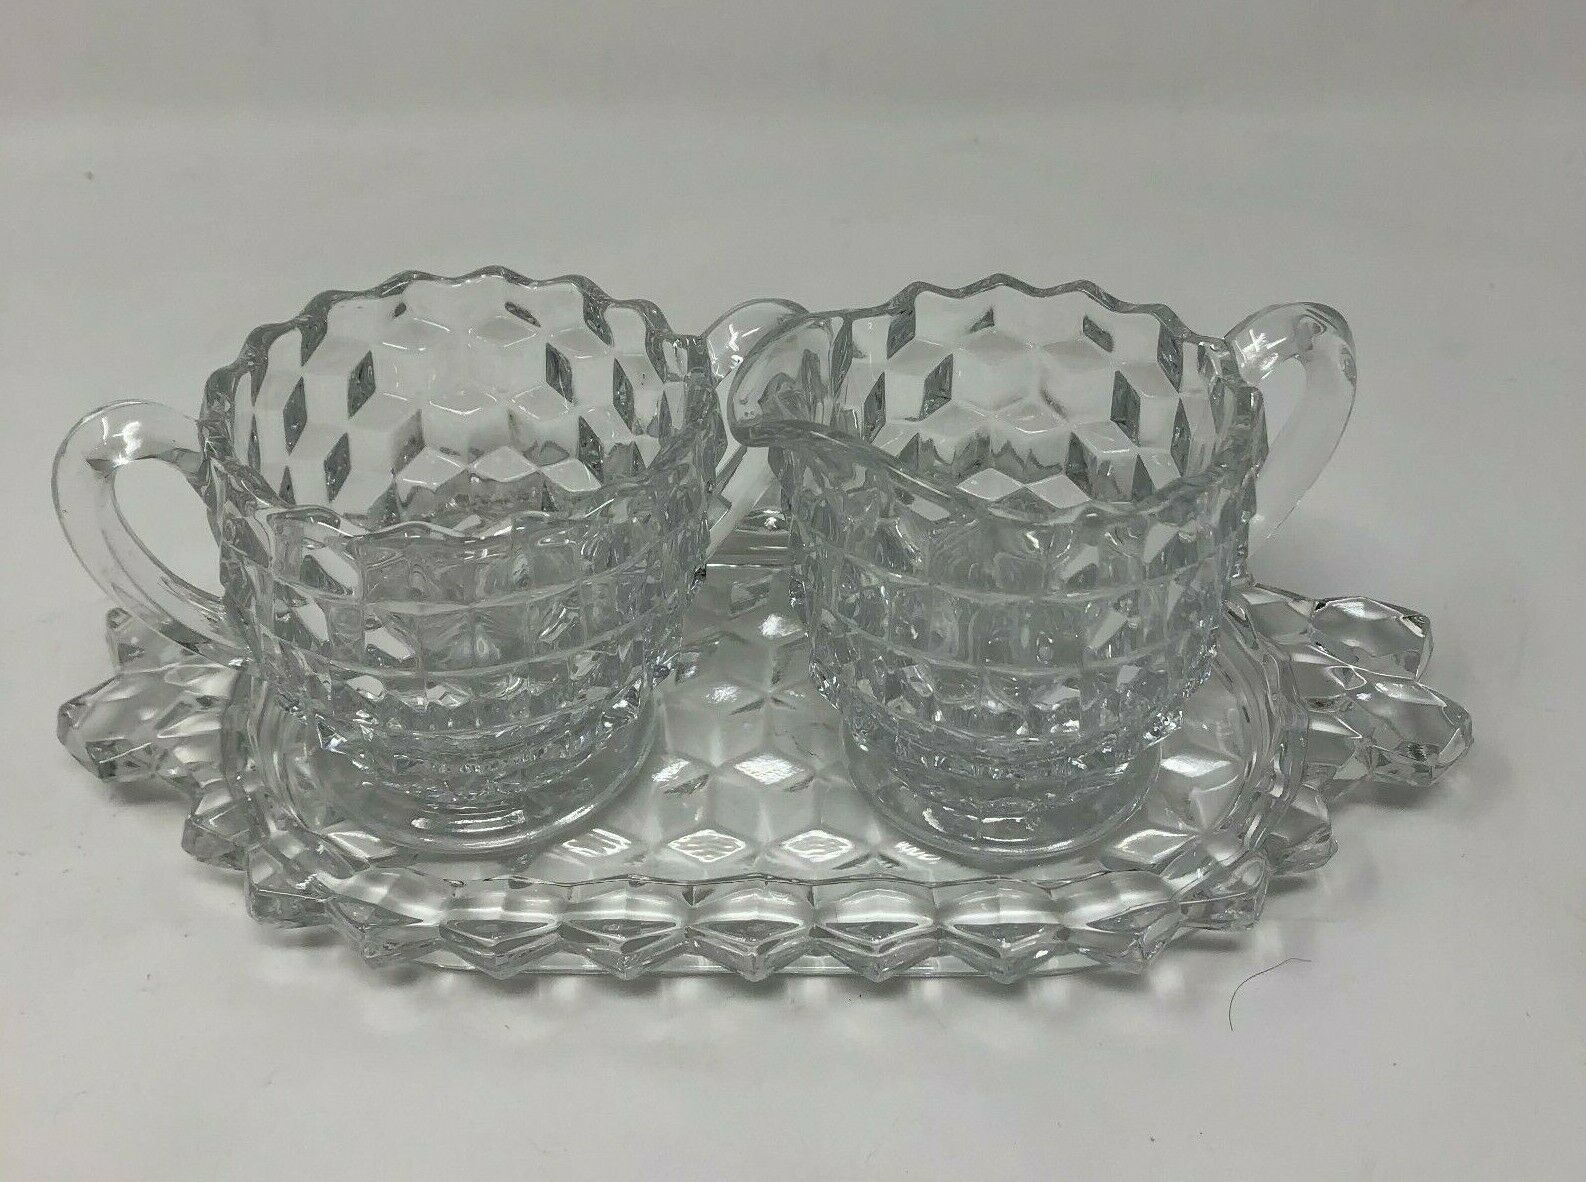 Primary image for Authentic Fostoria Clear Cubist Plate, Sugar Bowl & Creamer Set American (FOSCC)